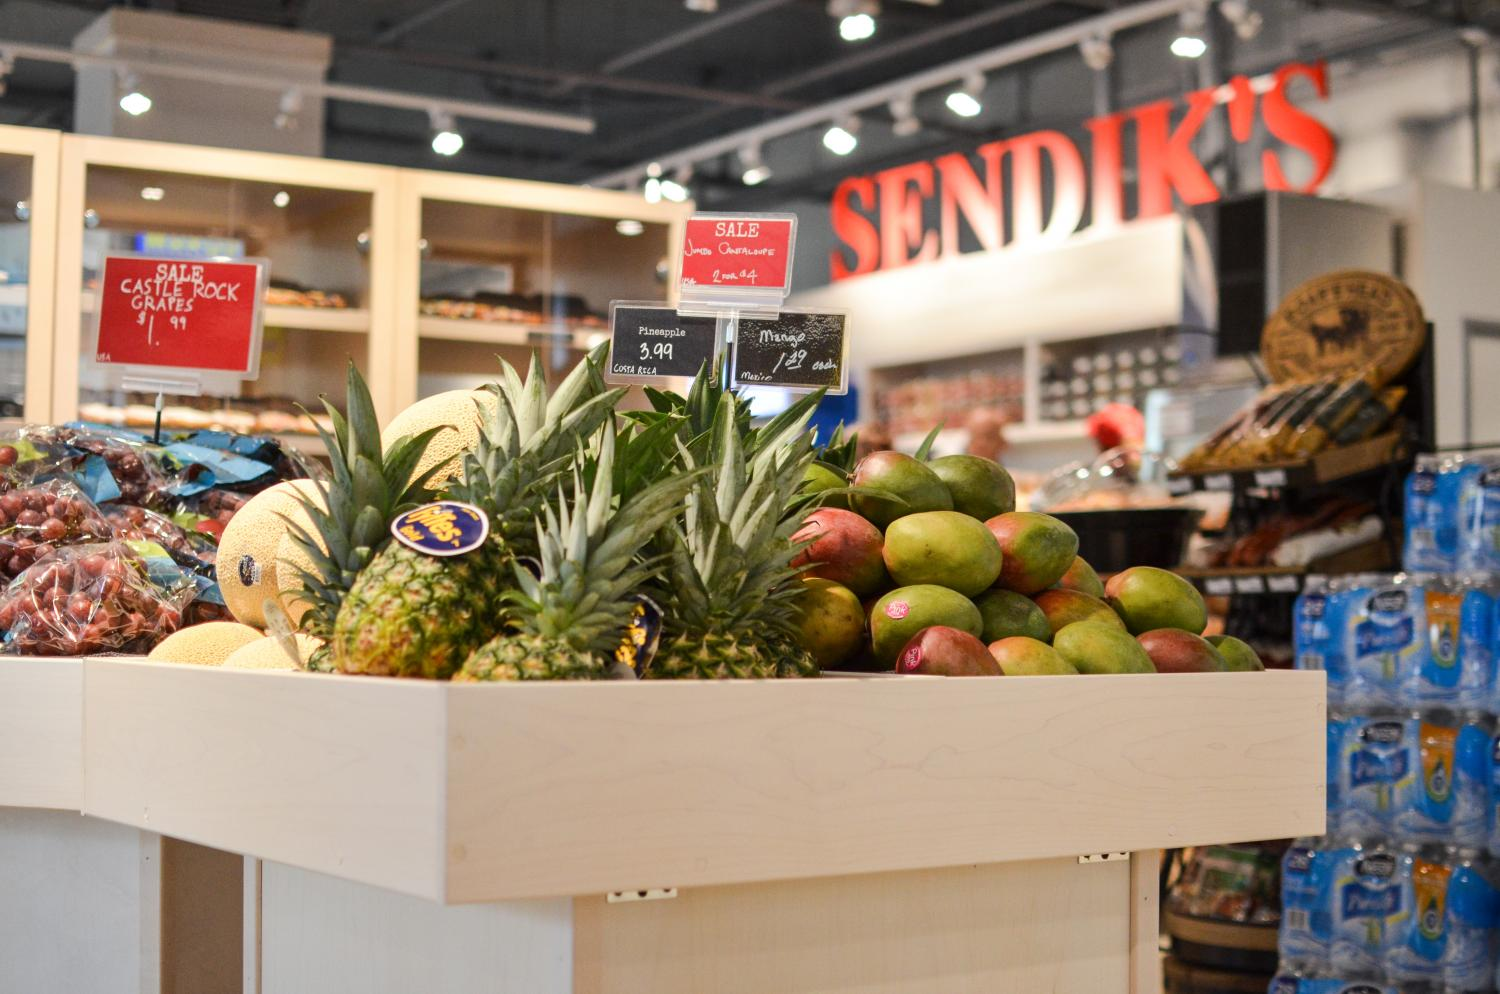 Sendik's Fresh2Go opened Aug. 21 on the 1500 block of W. Wells Street.